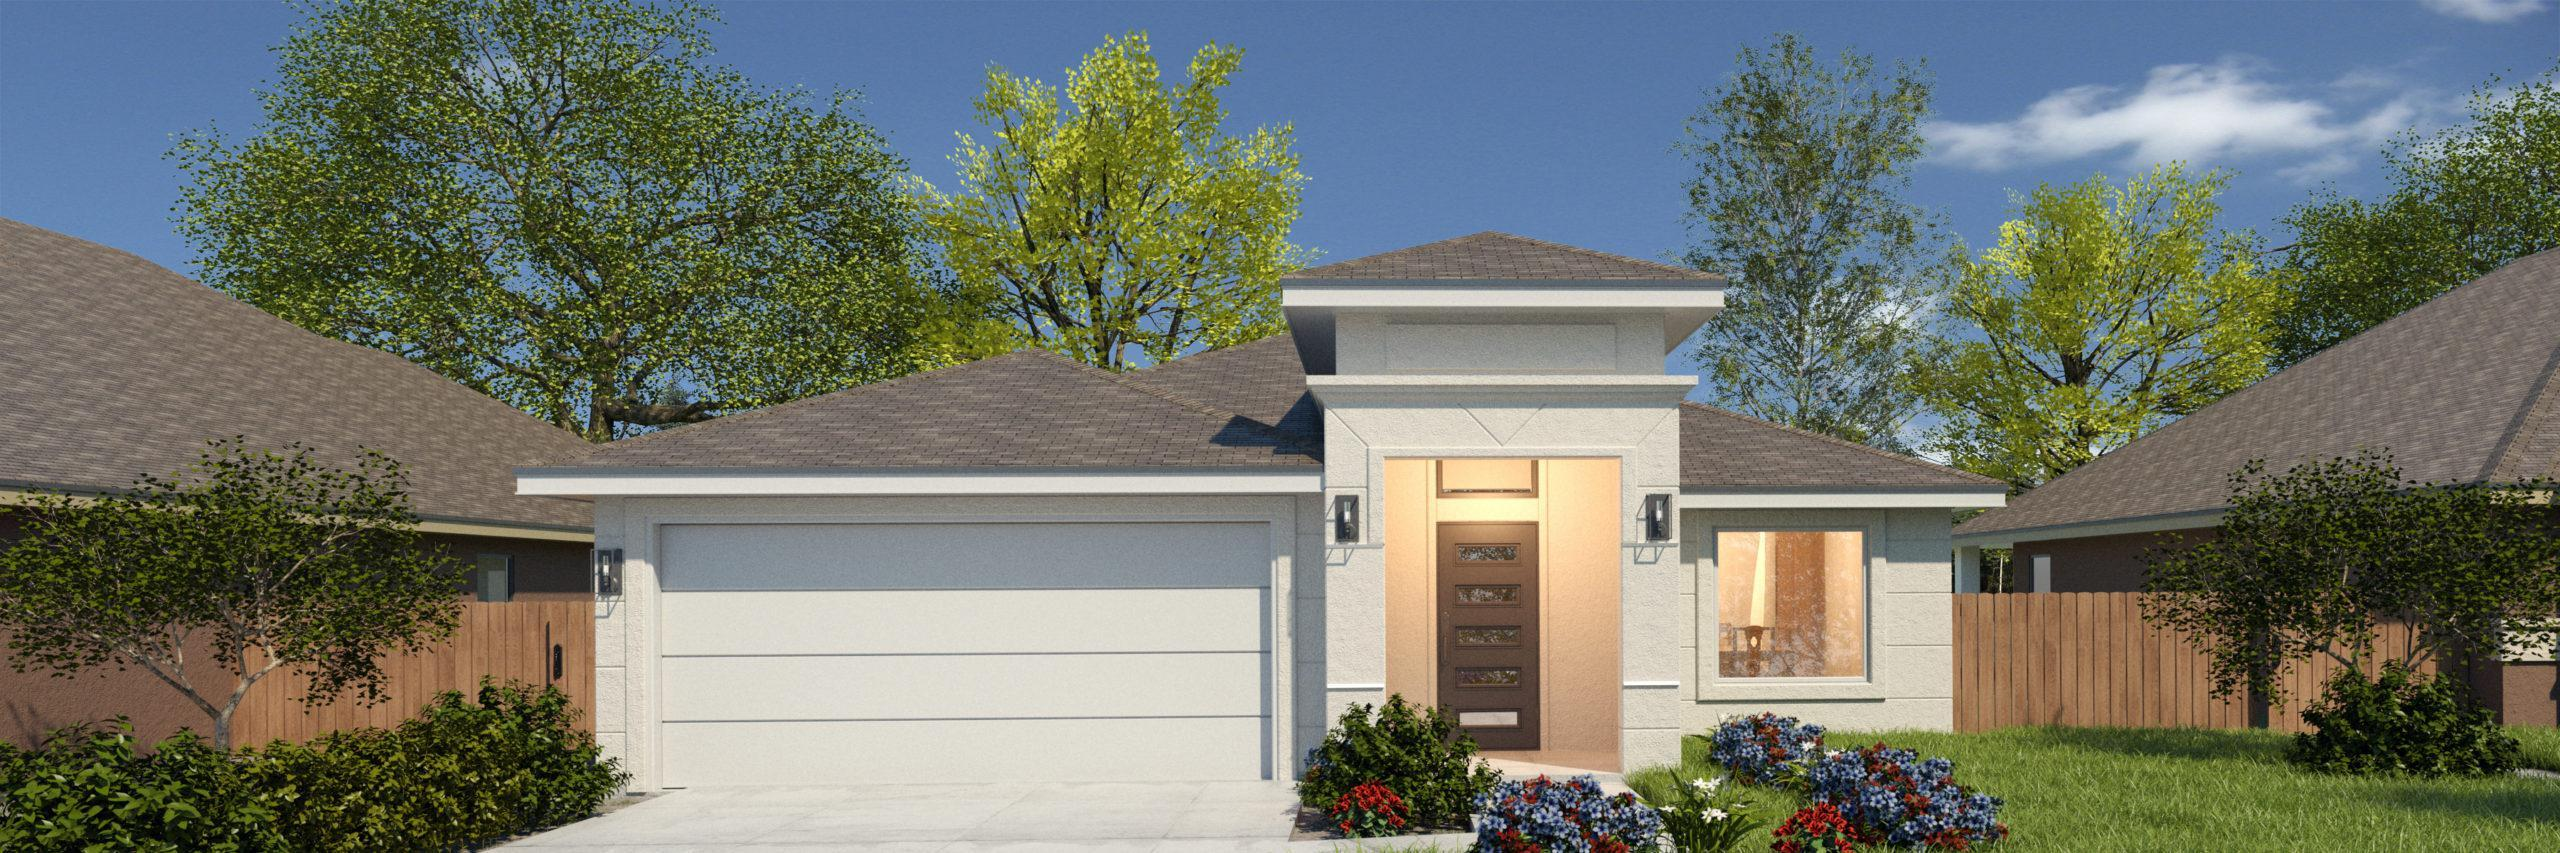 Exterior featured in the Santa Cecilia II By WestWind Homes in Rio Grande Valley, TX